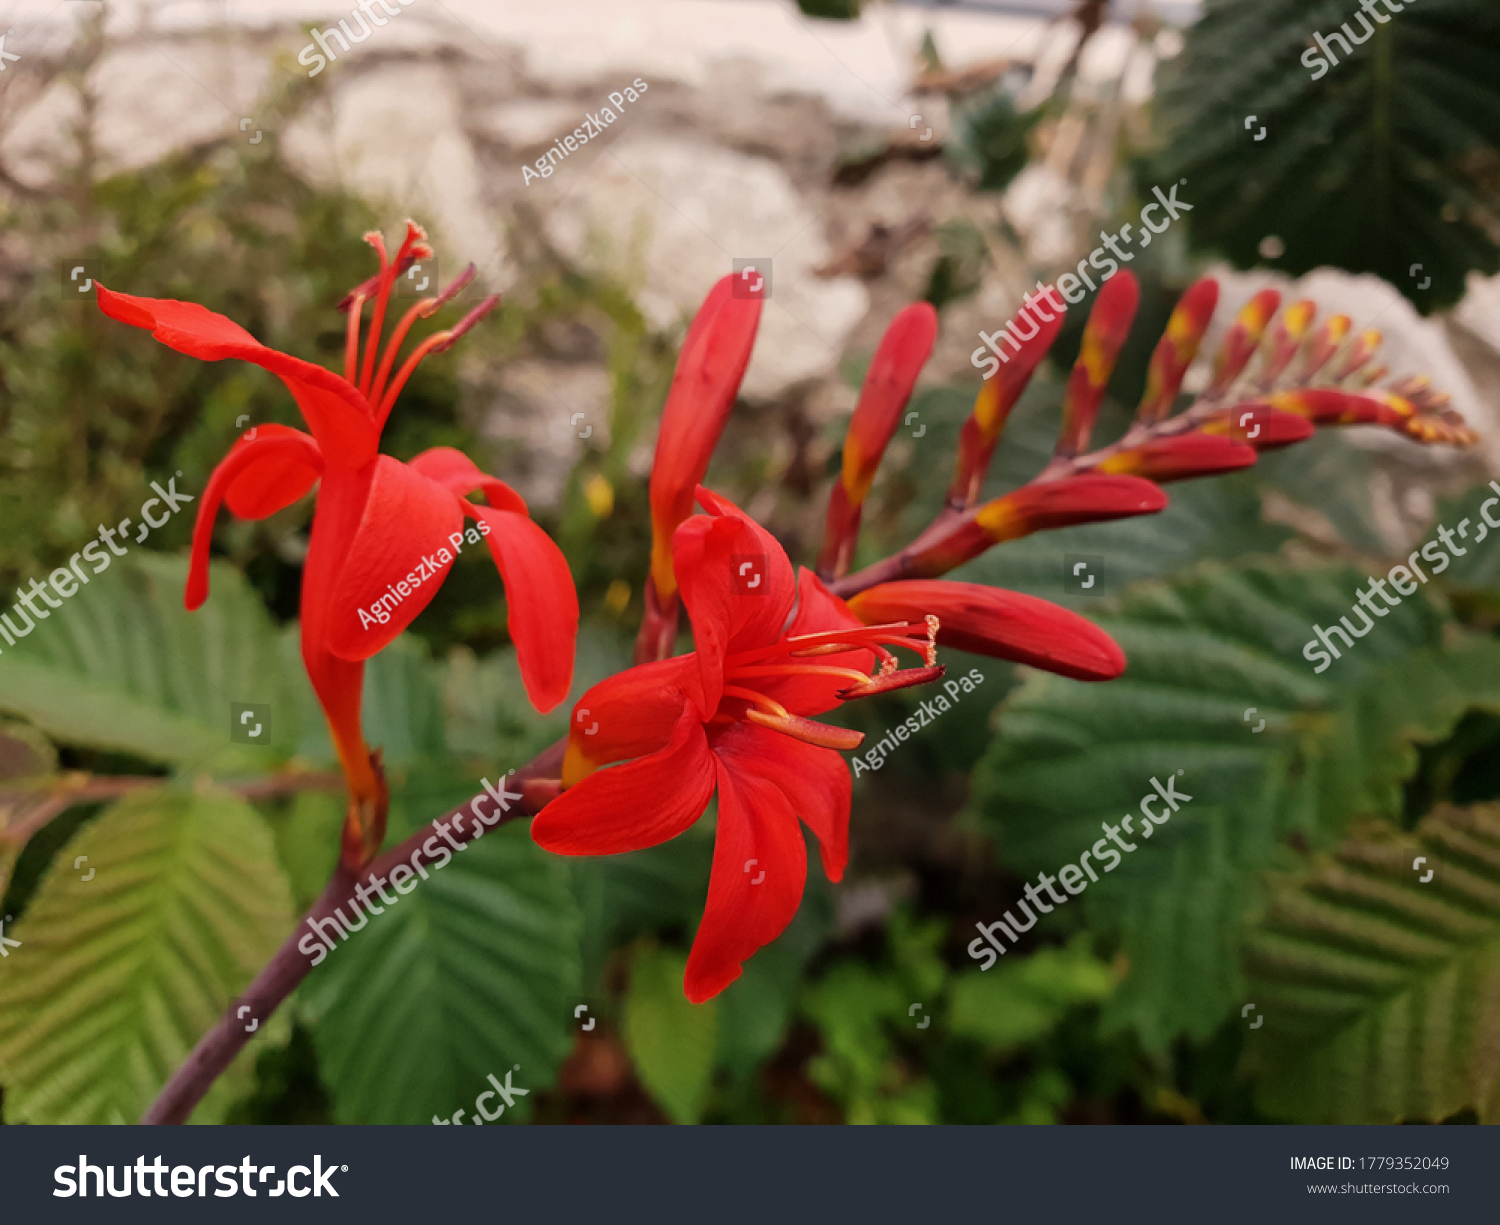 stock-photo-close-up-view-of-crocosmia-l